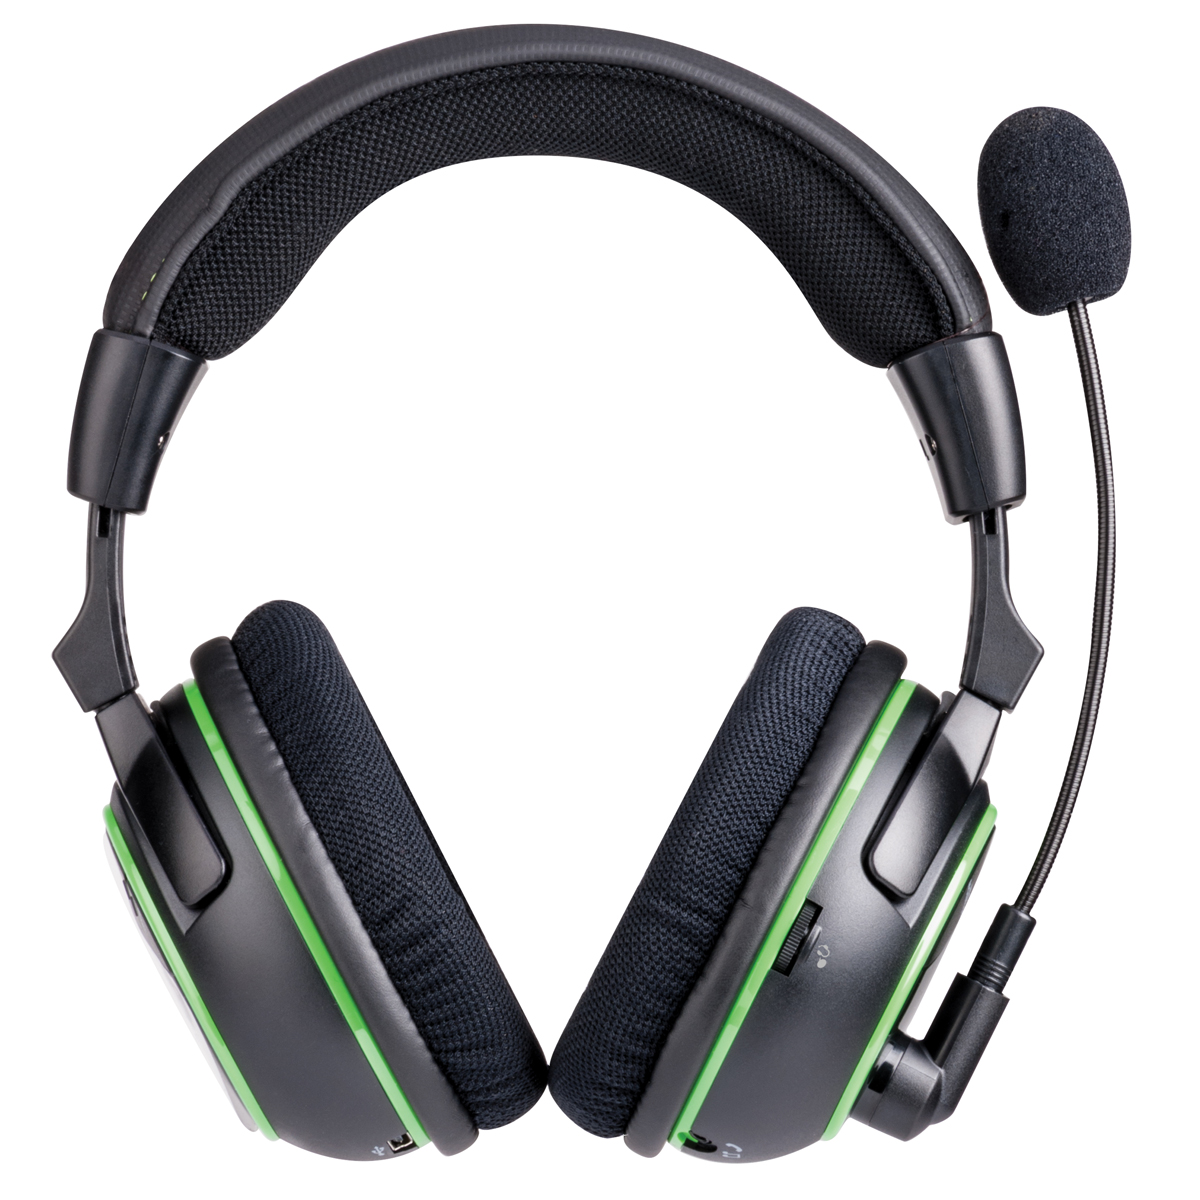 Turtle Beach Ear Force Stealth 500X Xbox One wireleless surround sound DTS Headphone:X review profile